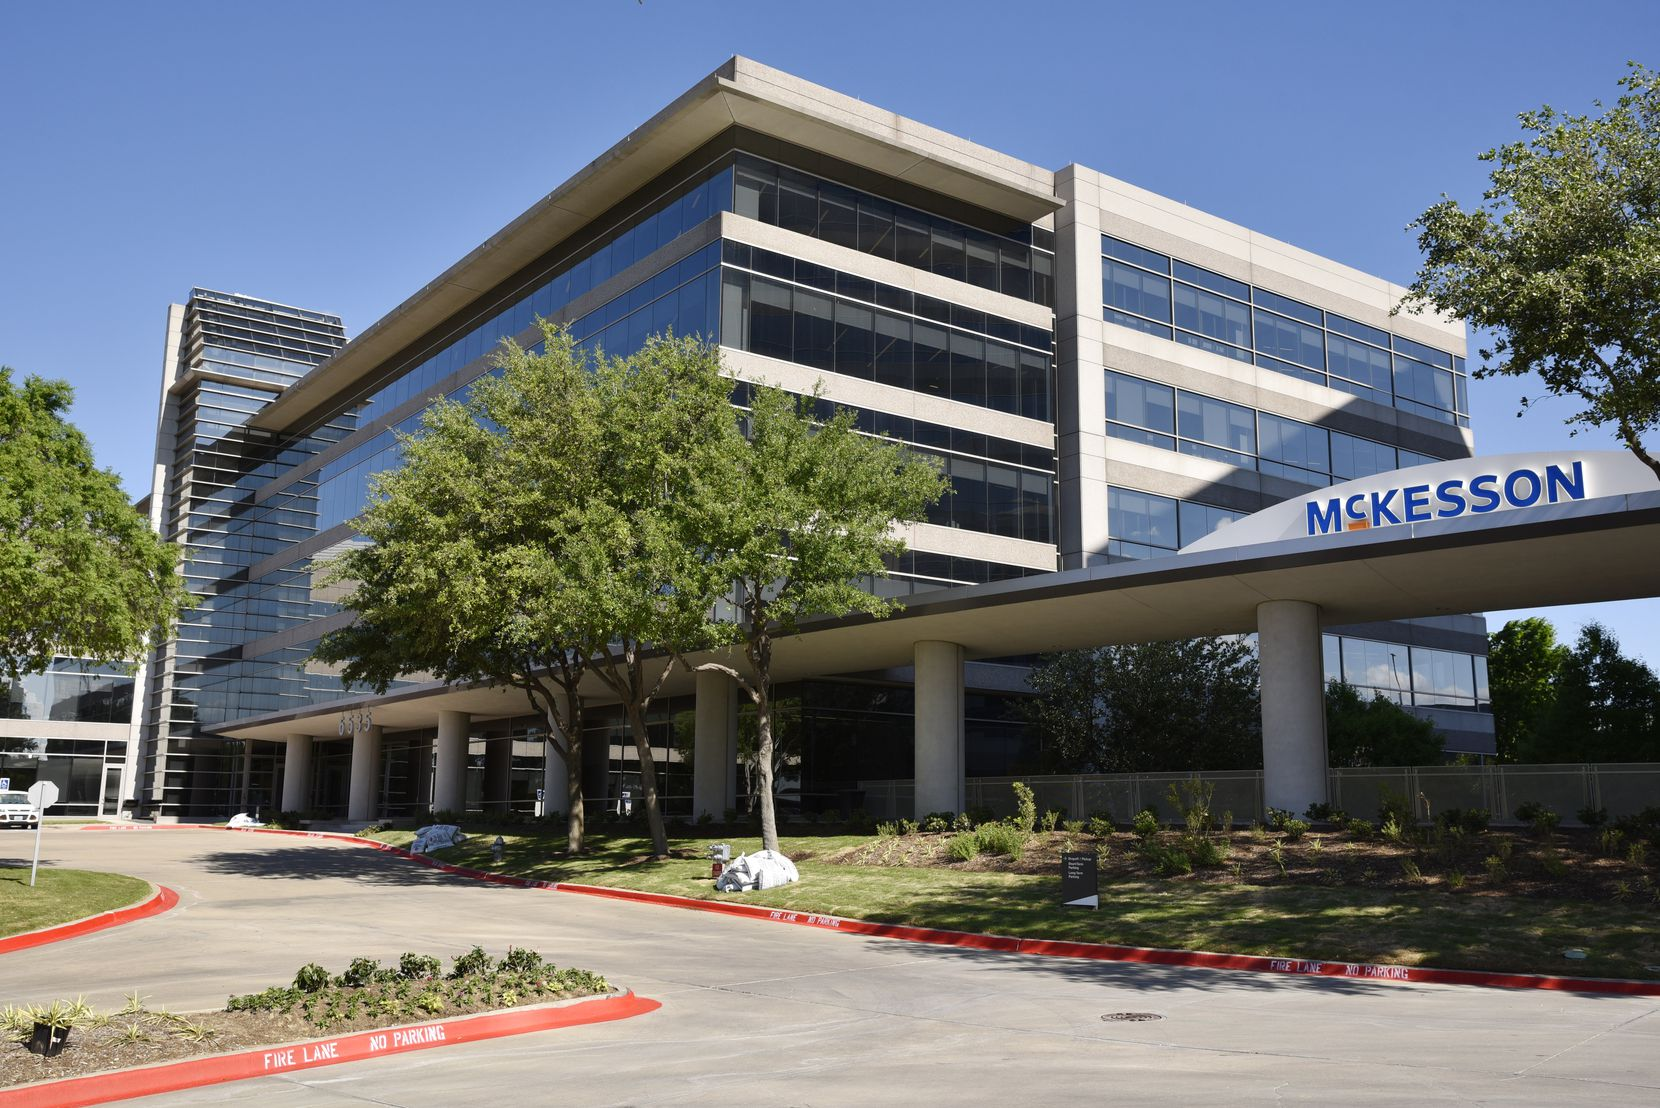 McKesson's corporate headquarters in Irving. The medical and pharmaceutical supplier moved to North Texas in April 2019.